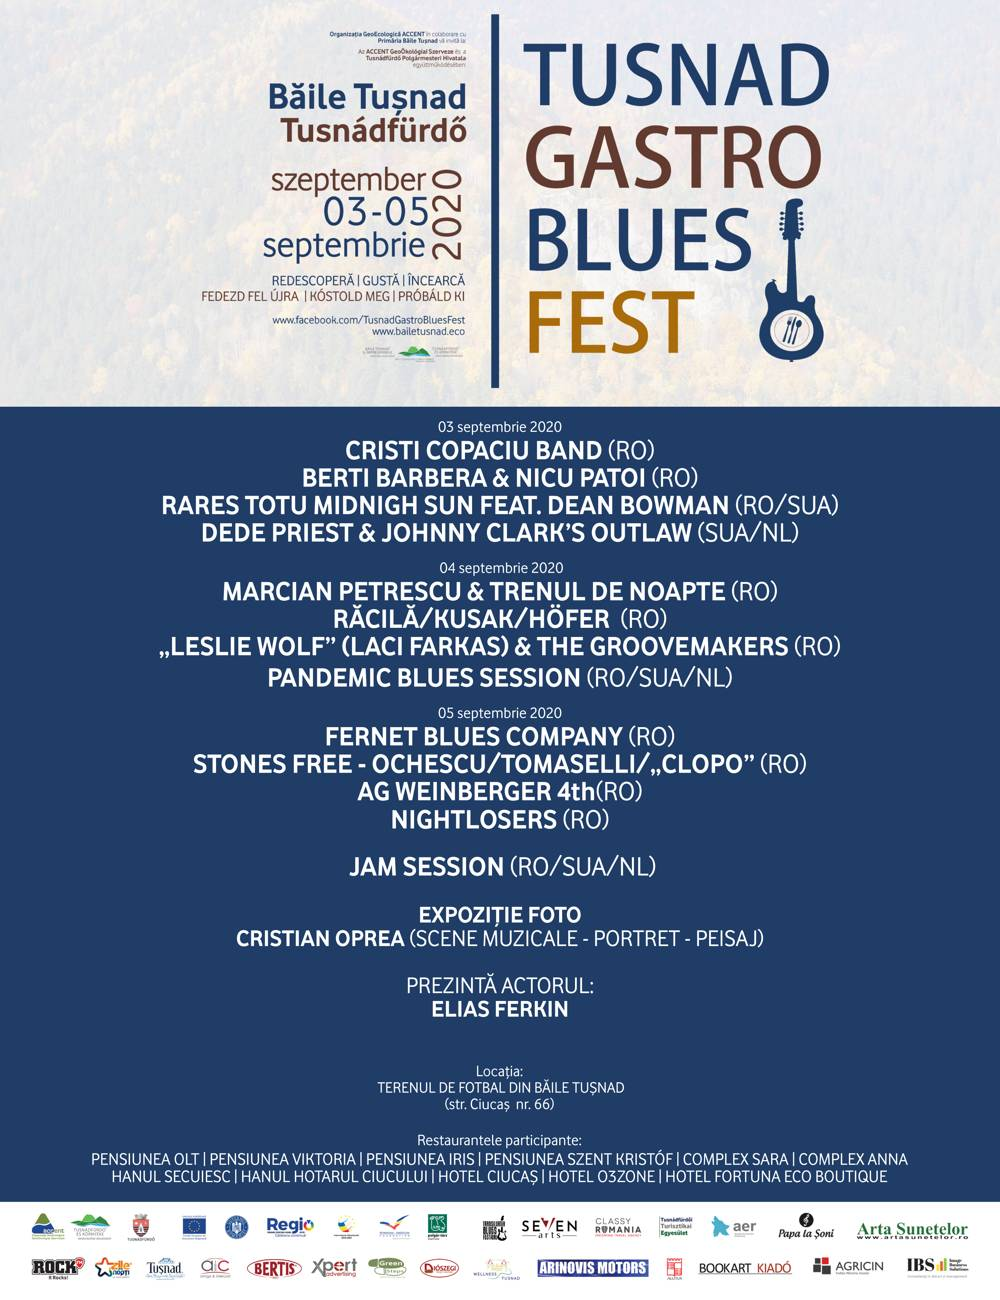 TUȘNADGASTRO BLUES FEST, 3-5 Septembrie 2020 - Program si detalii